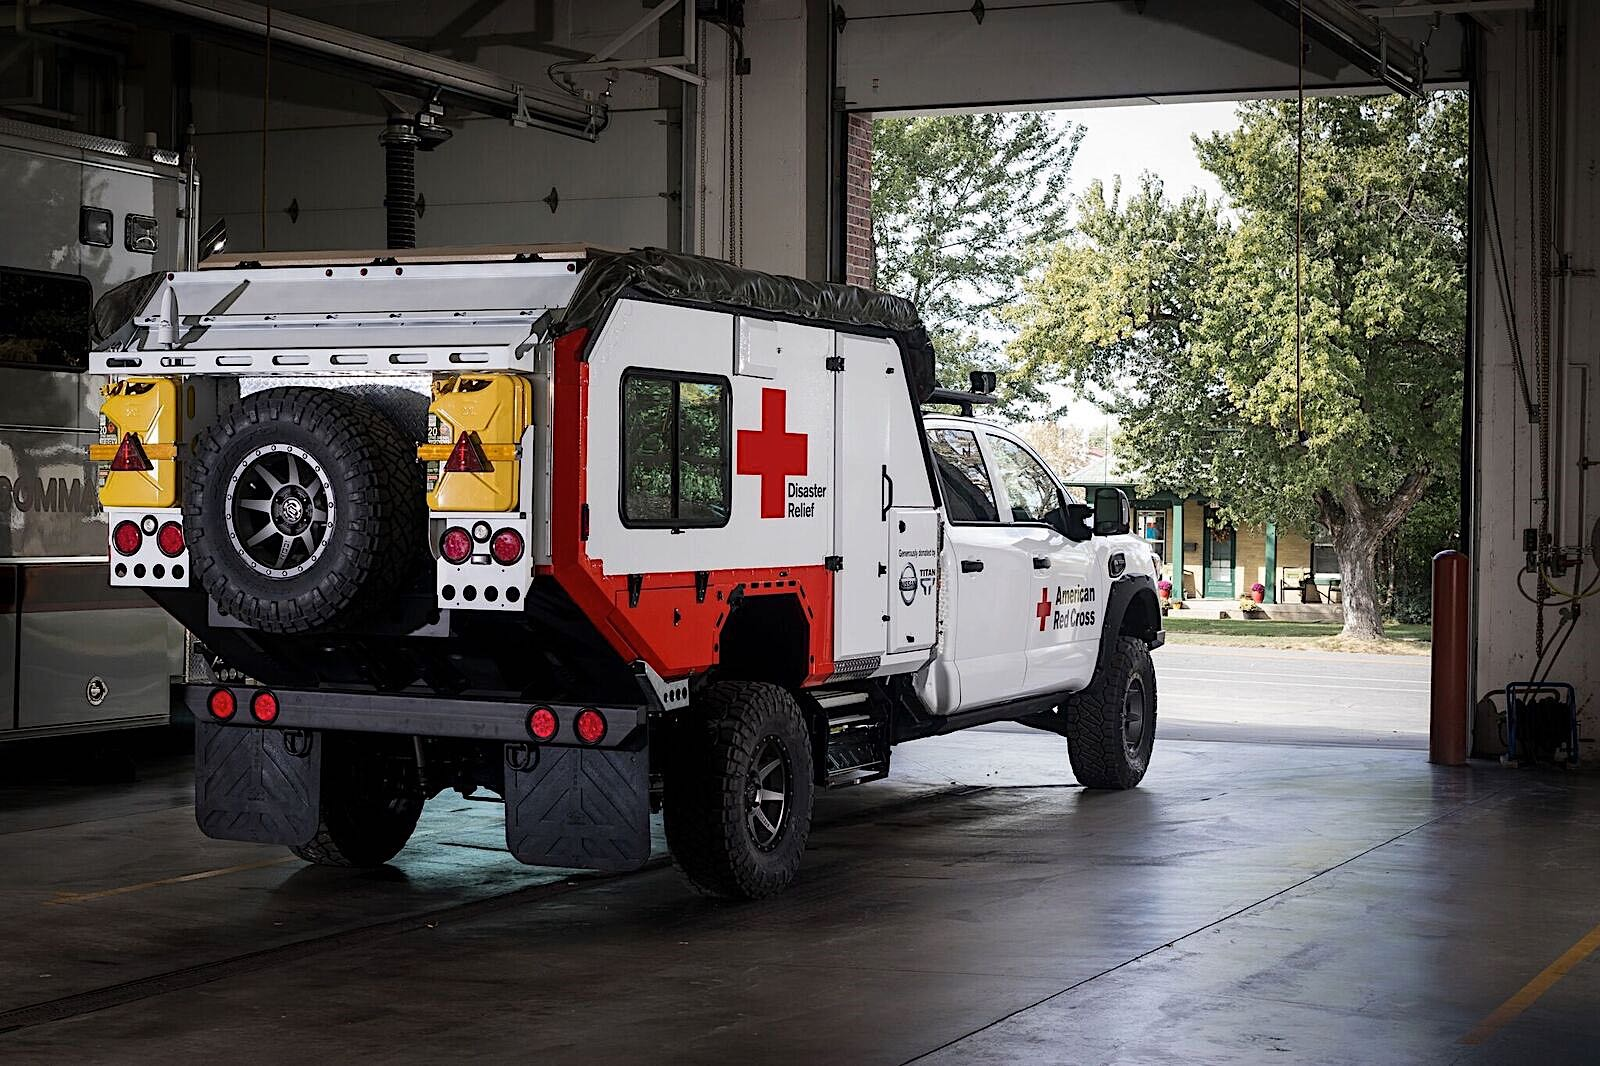 Nissan Ultimate Service Titan Joins The Red Cross To Help